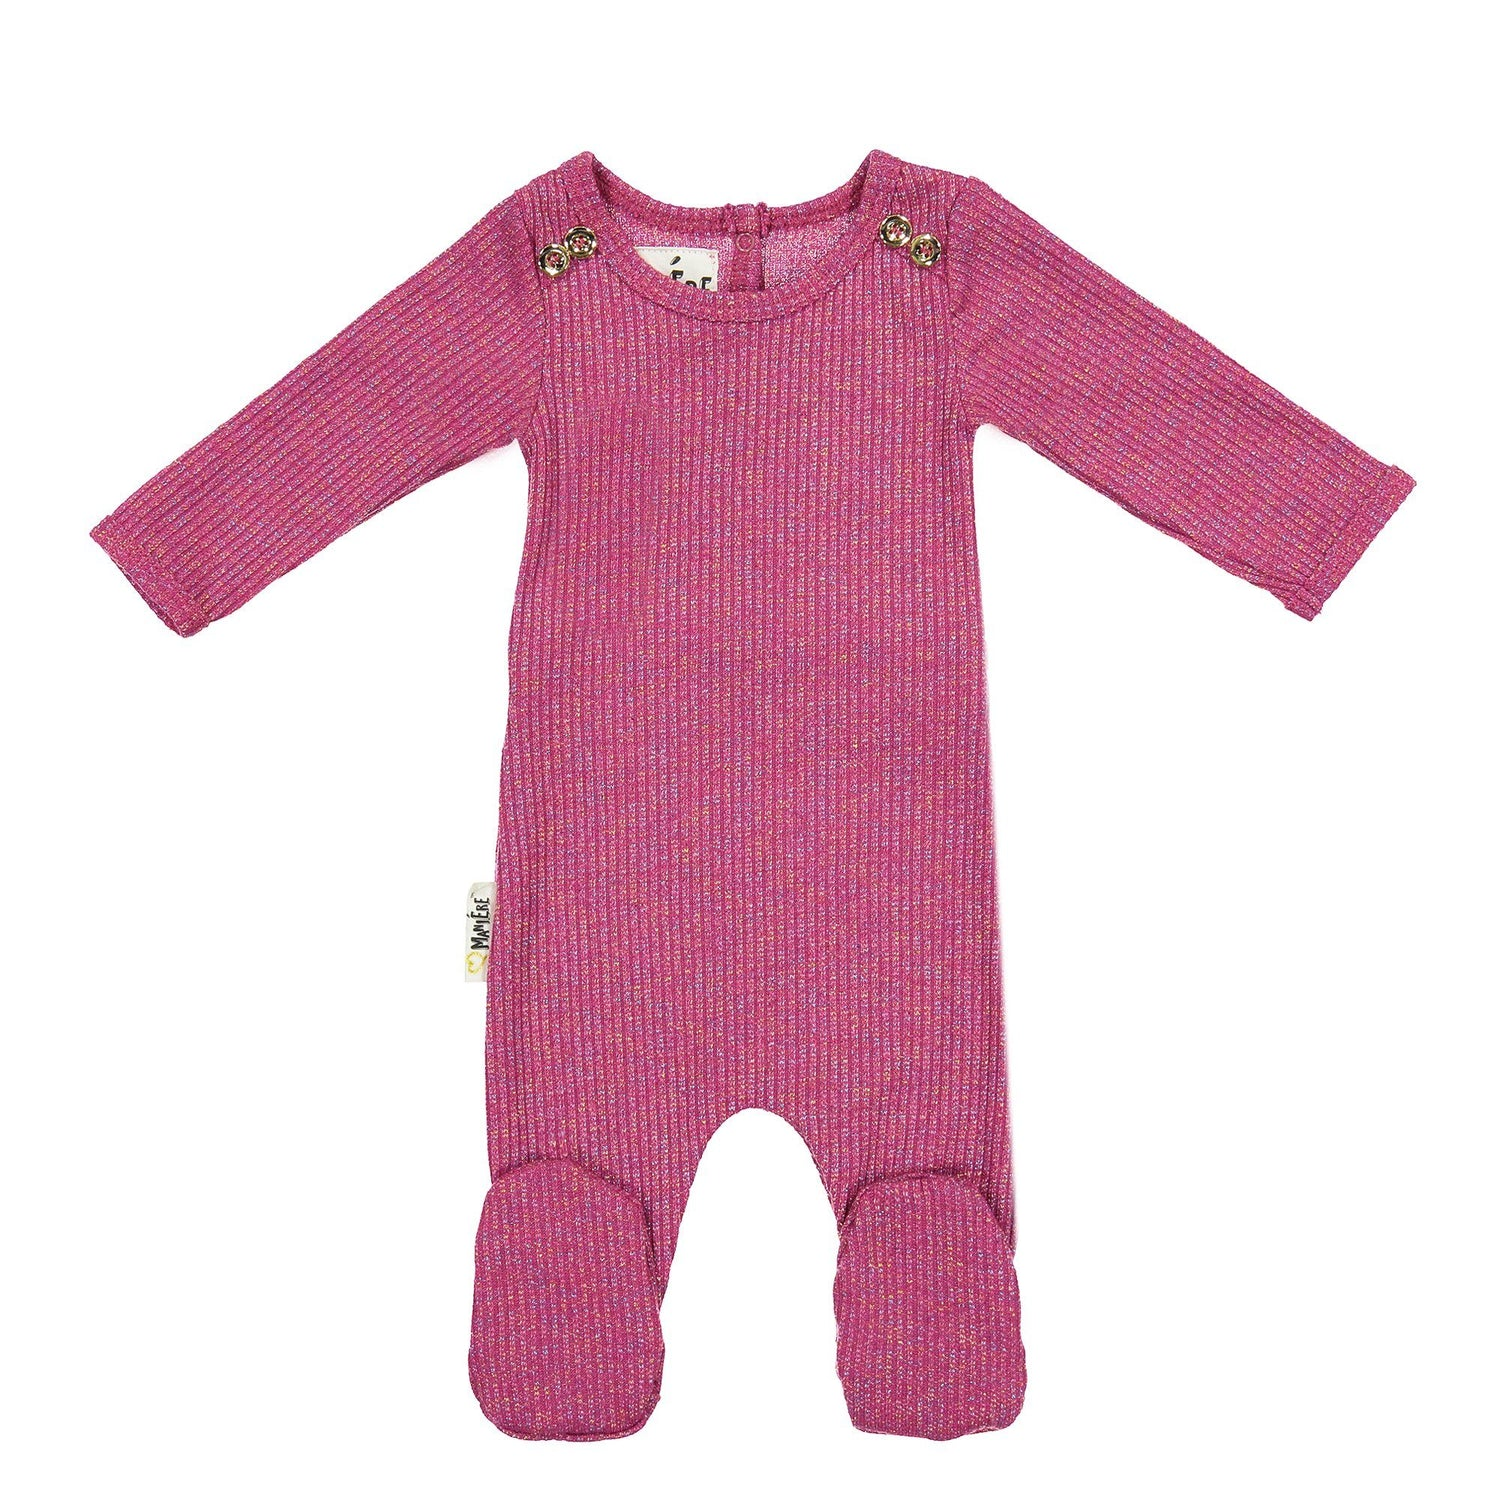 Sparkle Rib Footie Baby Footies Maniere Accessories Fuschia 3 Months